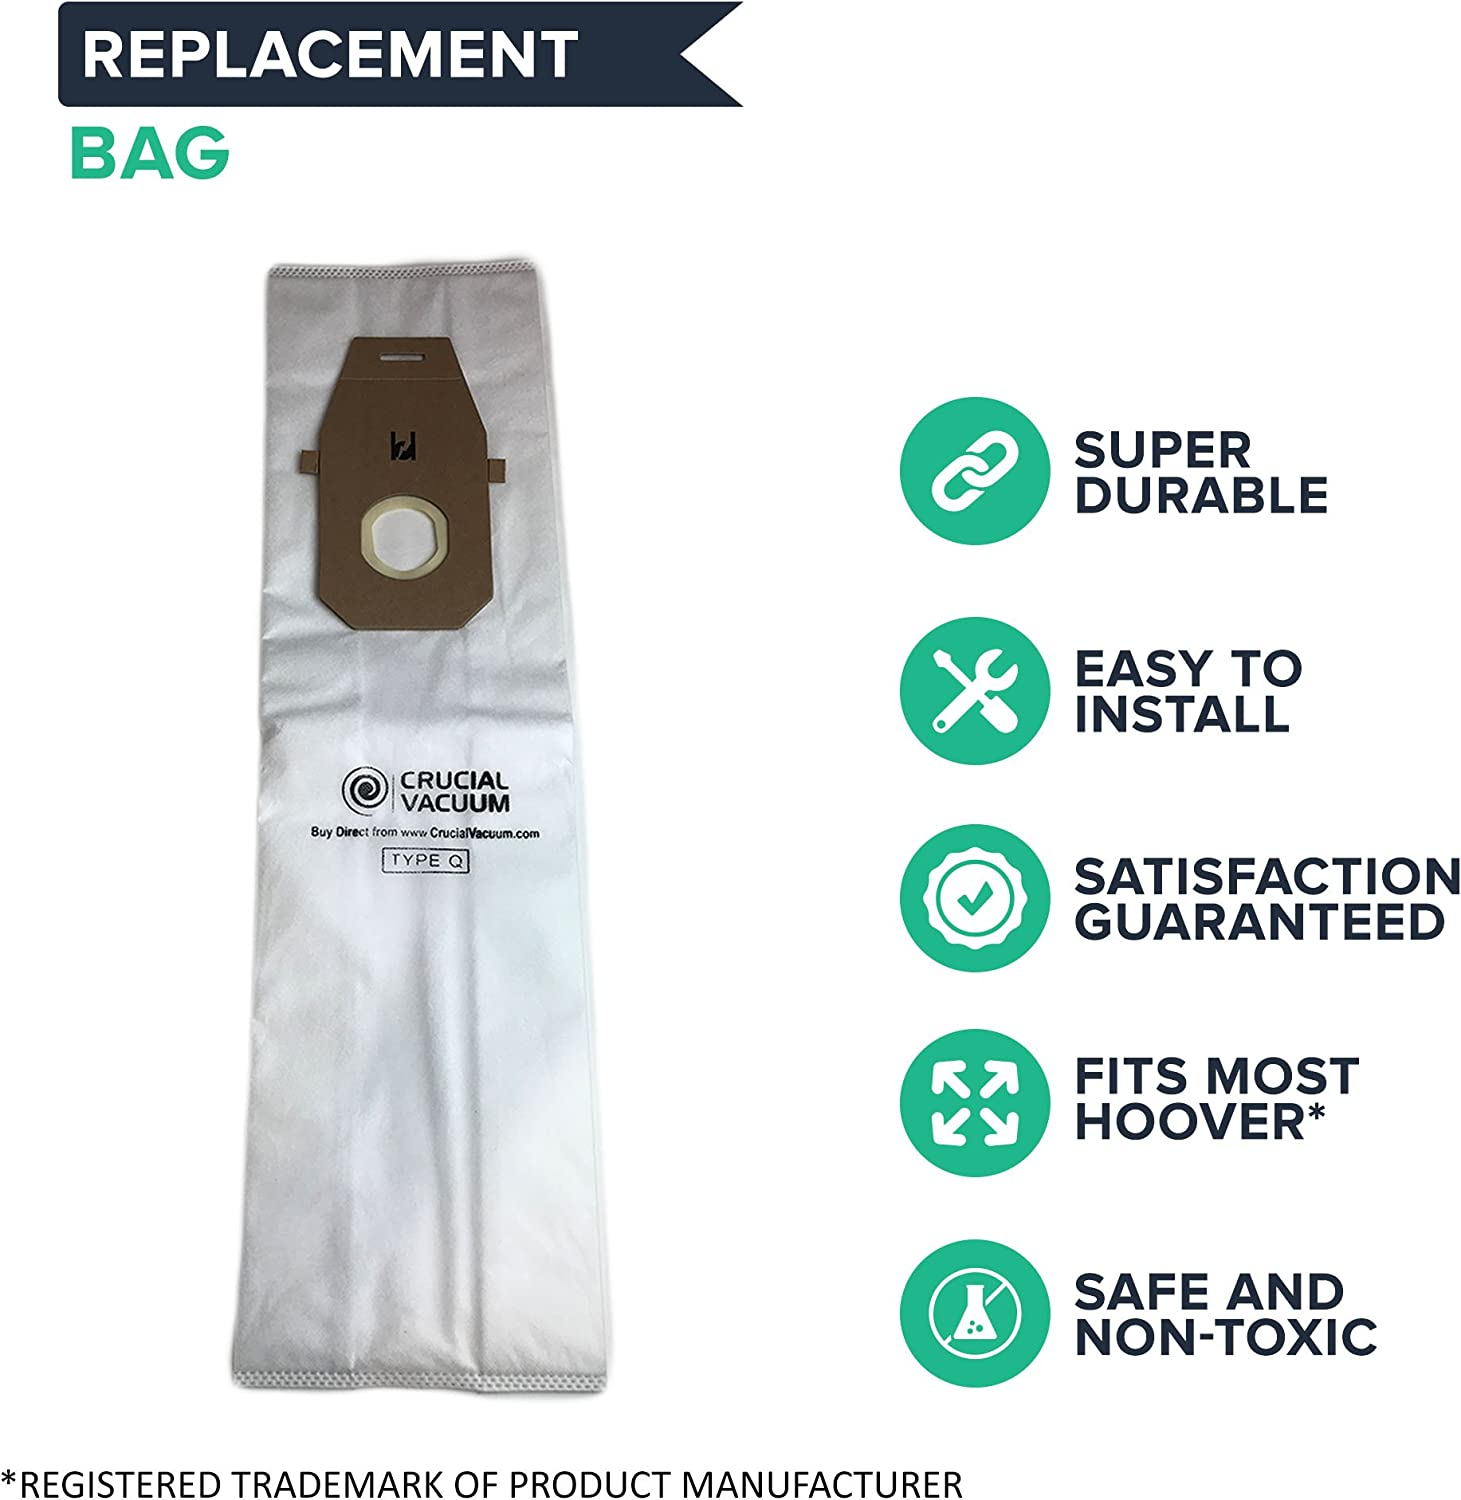 Crucial Vacuum Replacement Vac Bags Compatible With Hoover Part Ah10000 Uh30010com Fits Hoover Platinum Uh30010com Upright Vacuums Use Type Q Compact Disposable Bag For Home Vacs